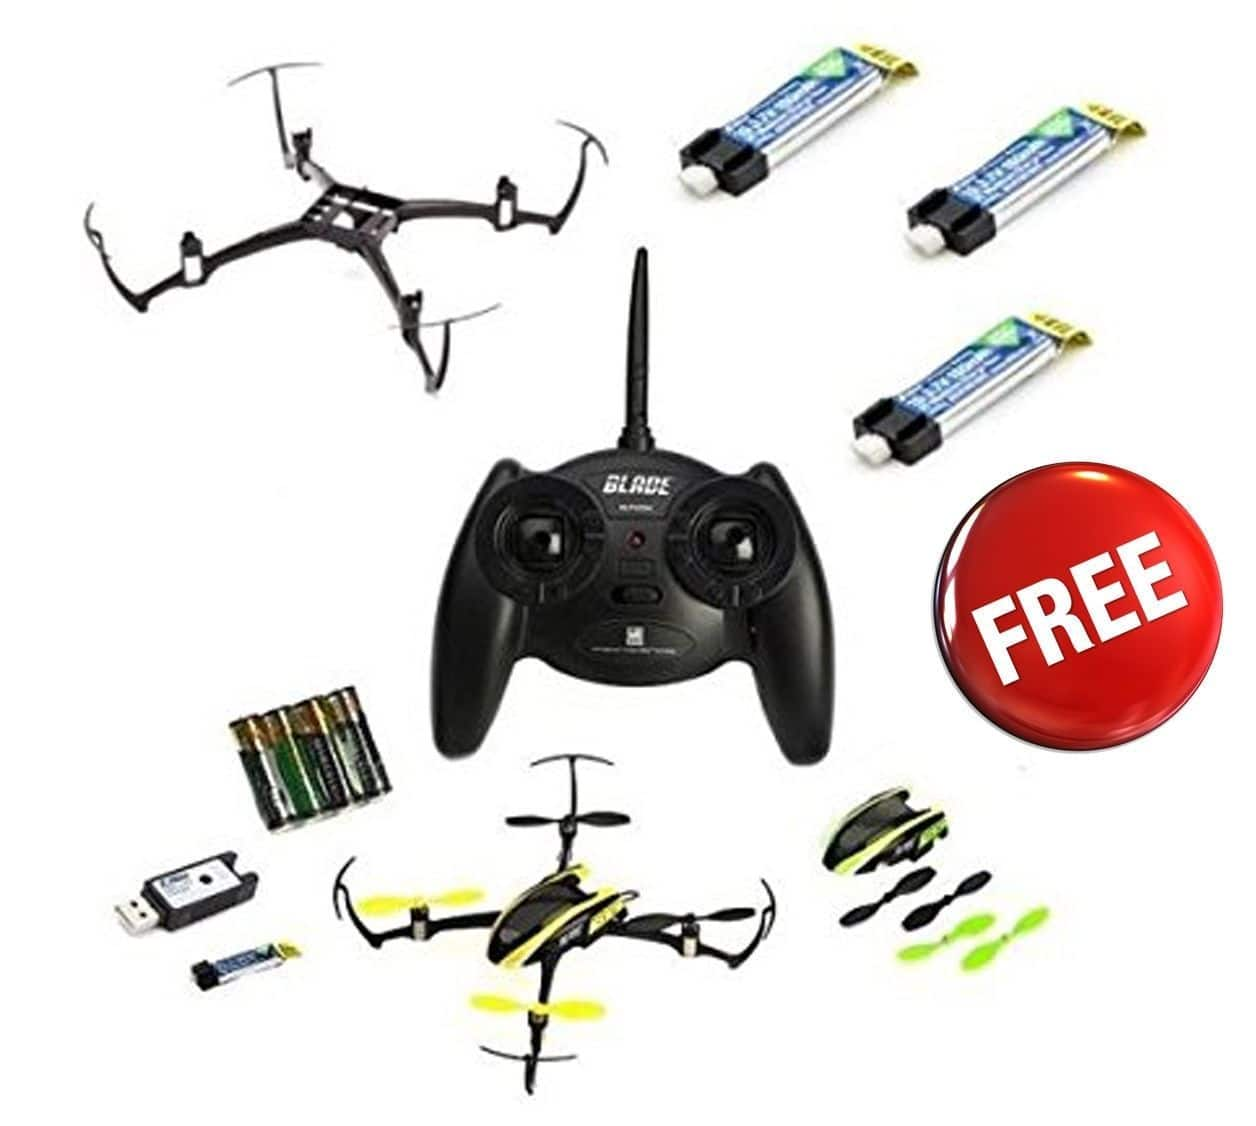 New Blade Nano QX RTF QuadCopter w/ 4 x Battery + Crash Kit Combo # BLH7600 $79.99